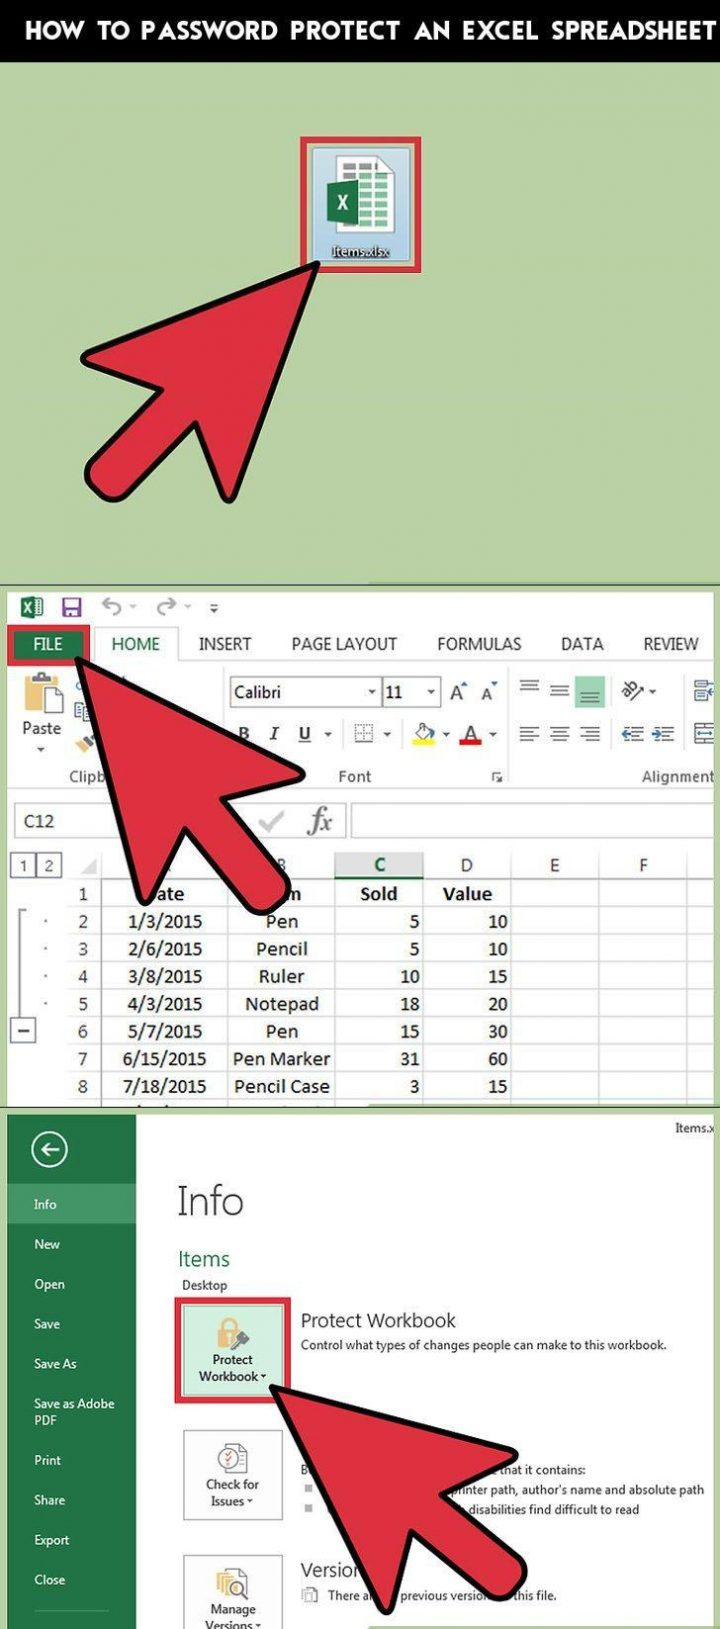 Password Excel Spreadsheet In How To Password Protect An Excel Spreadsheet  Practical Information